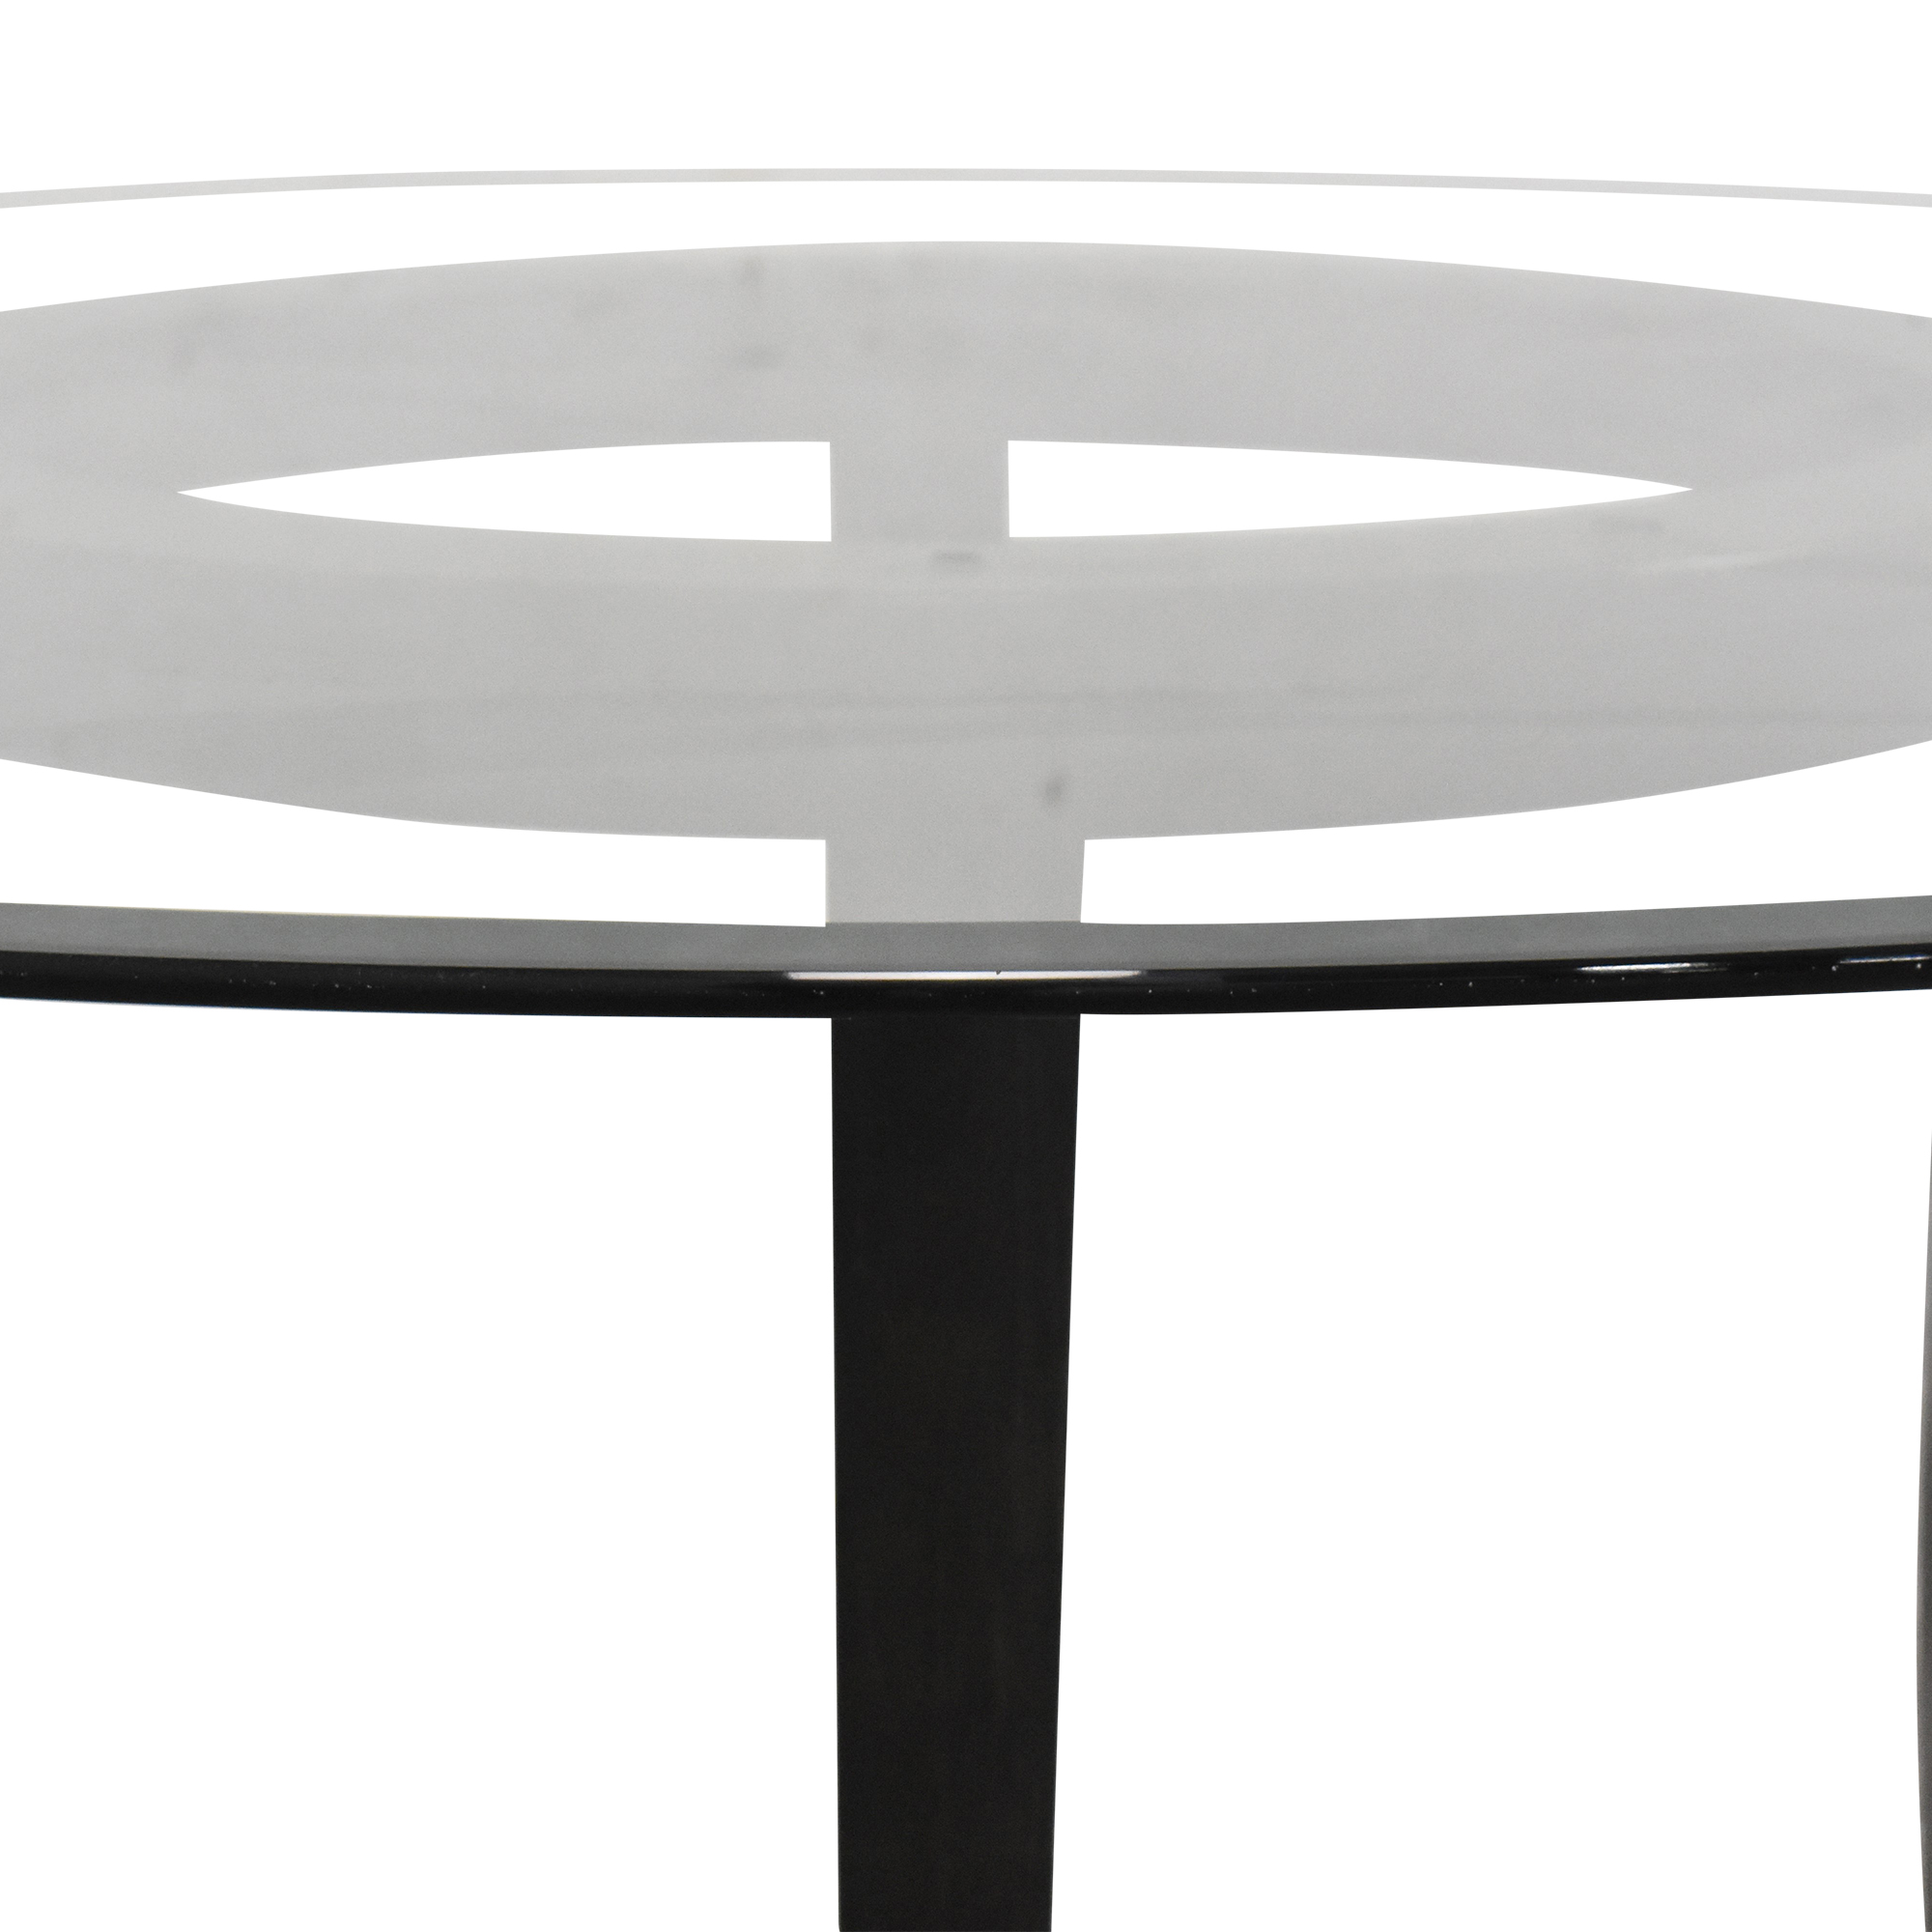 Crate & Barrel Halo Dining Table with Transparent Surface / Tables